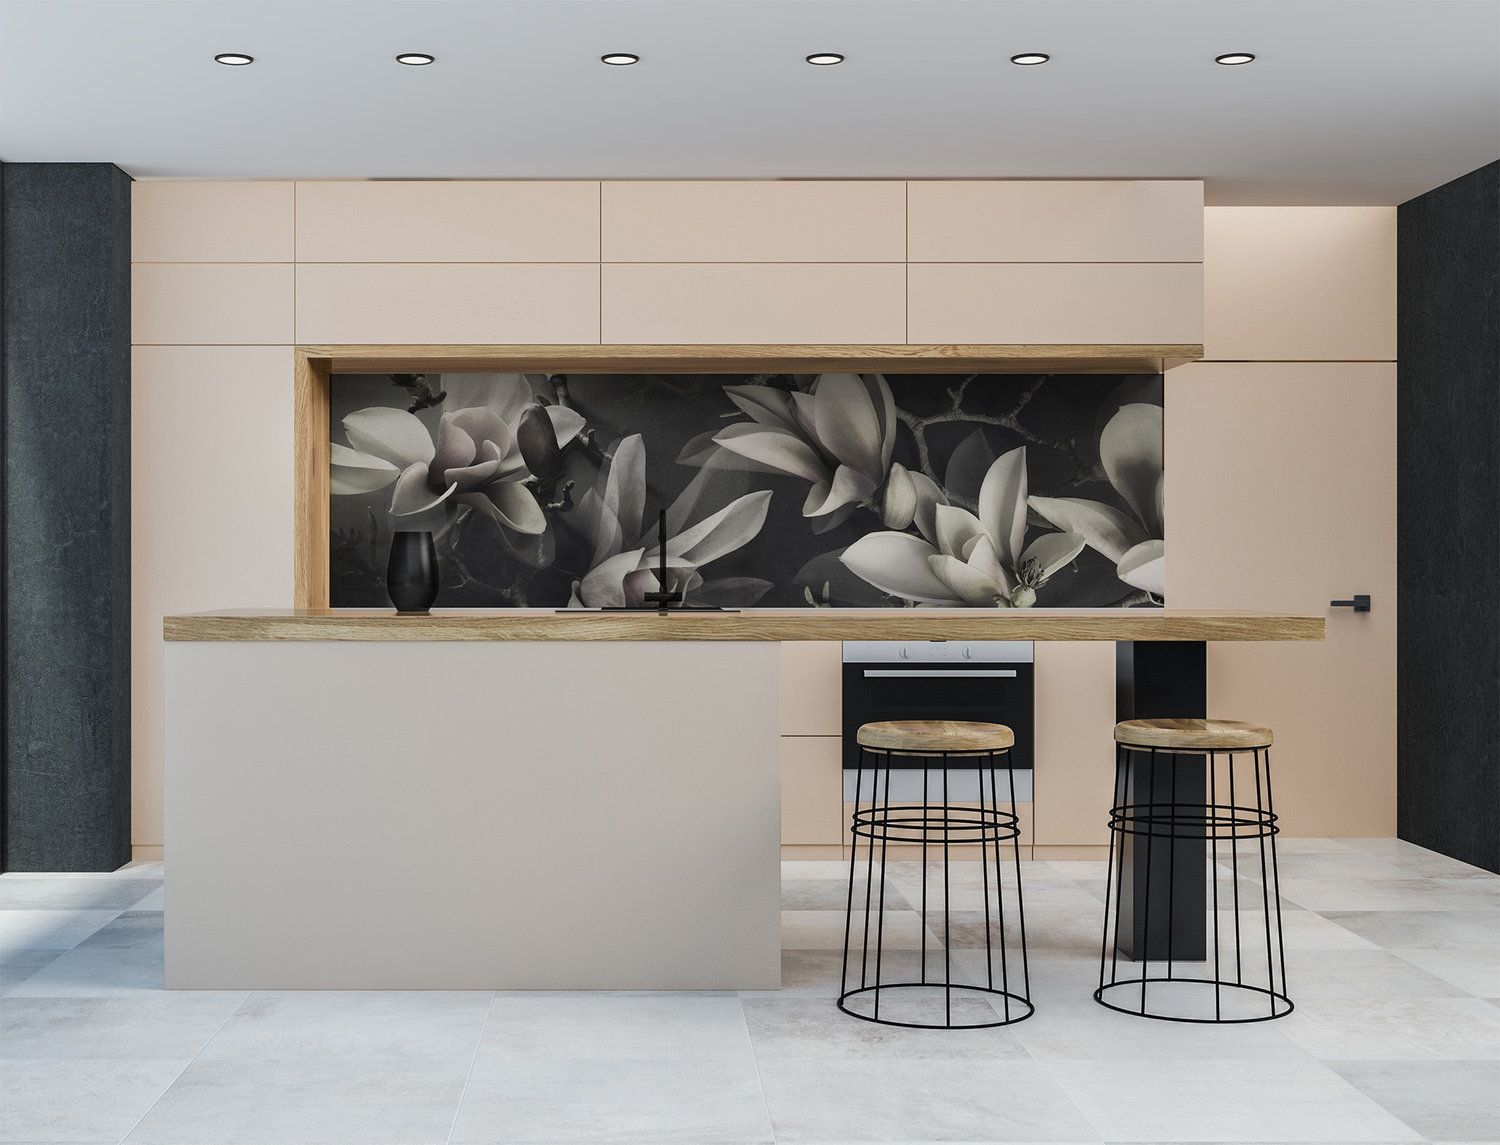 Printed 'images on glass' kitchen splashbacks and glass ...